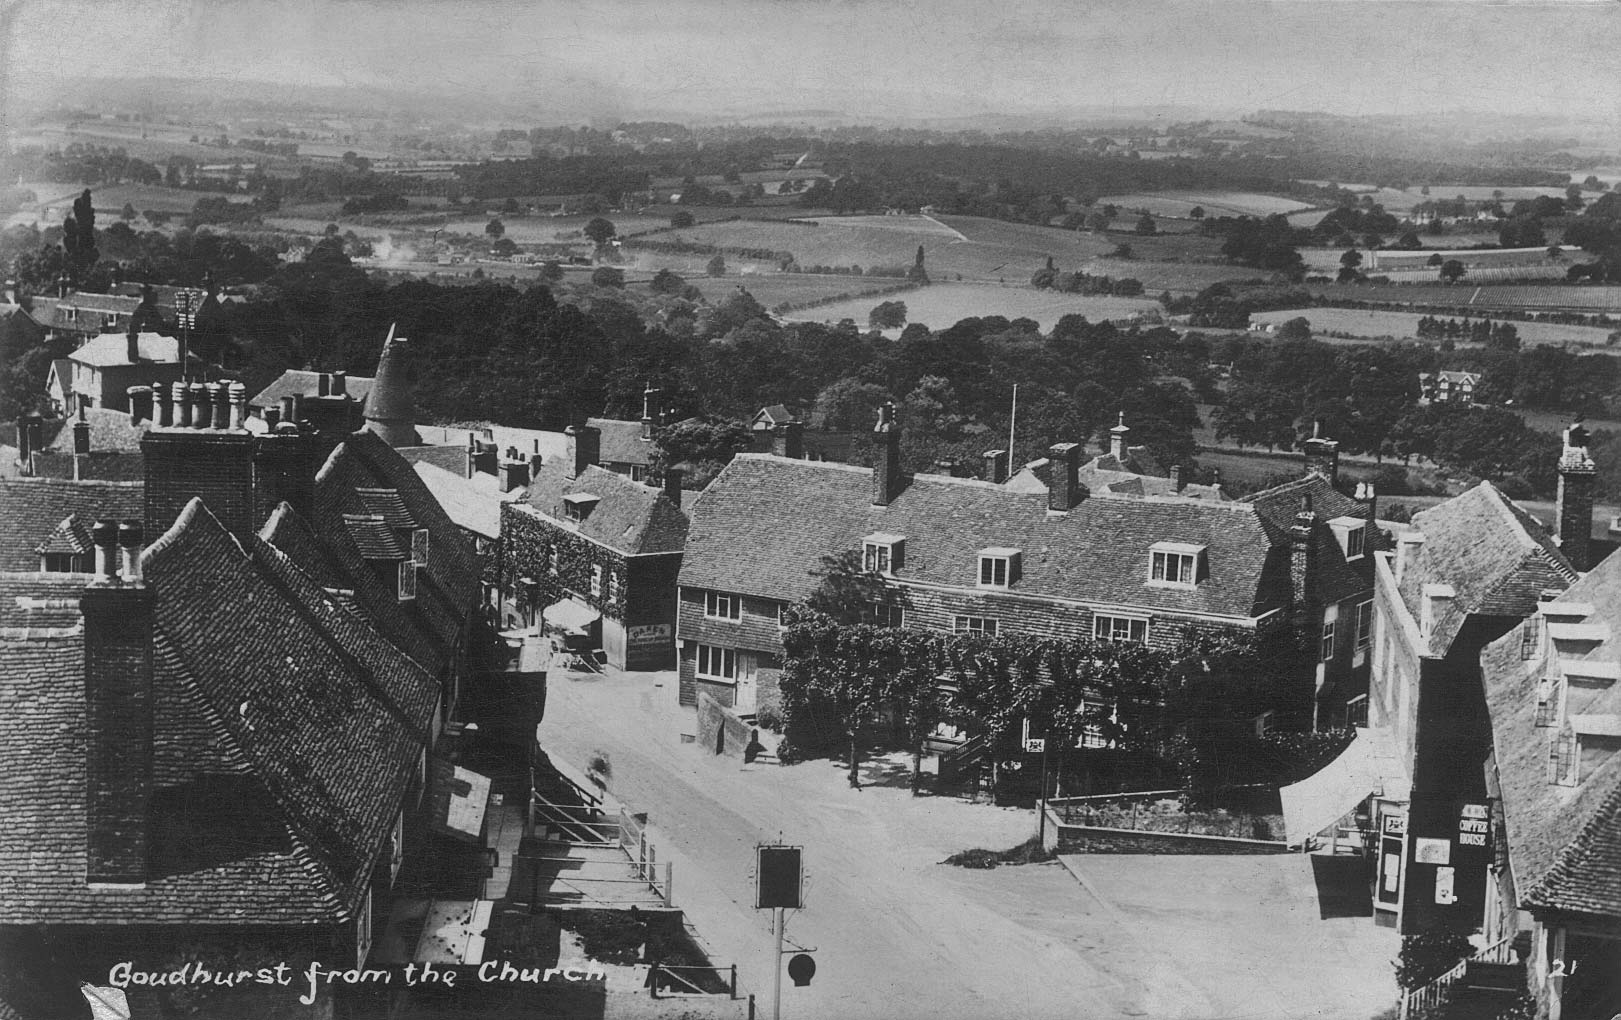 View from church tower pre-1922